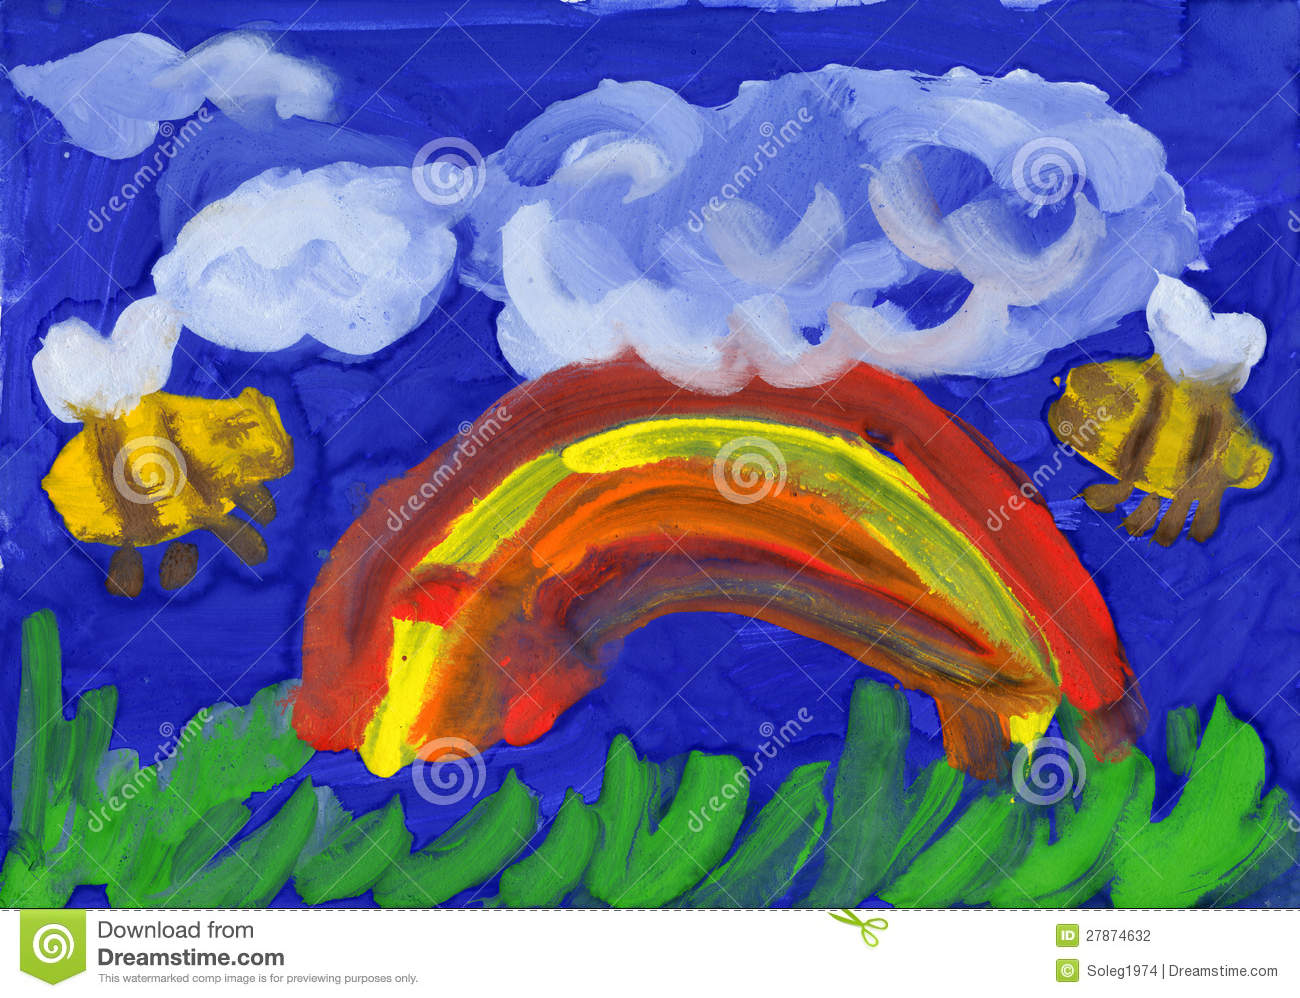 Rainbow and bees. childrens drawing